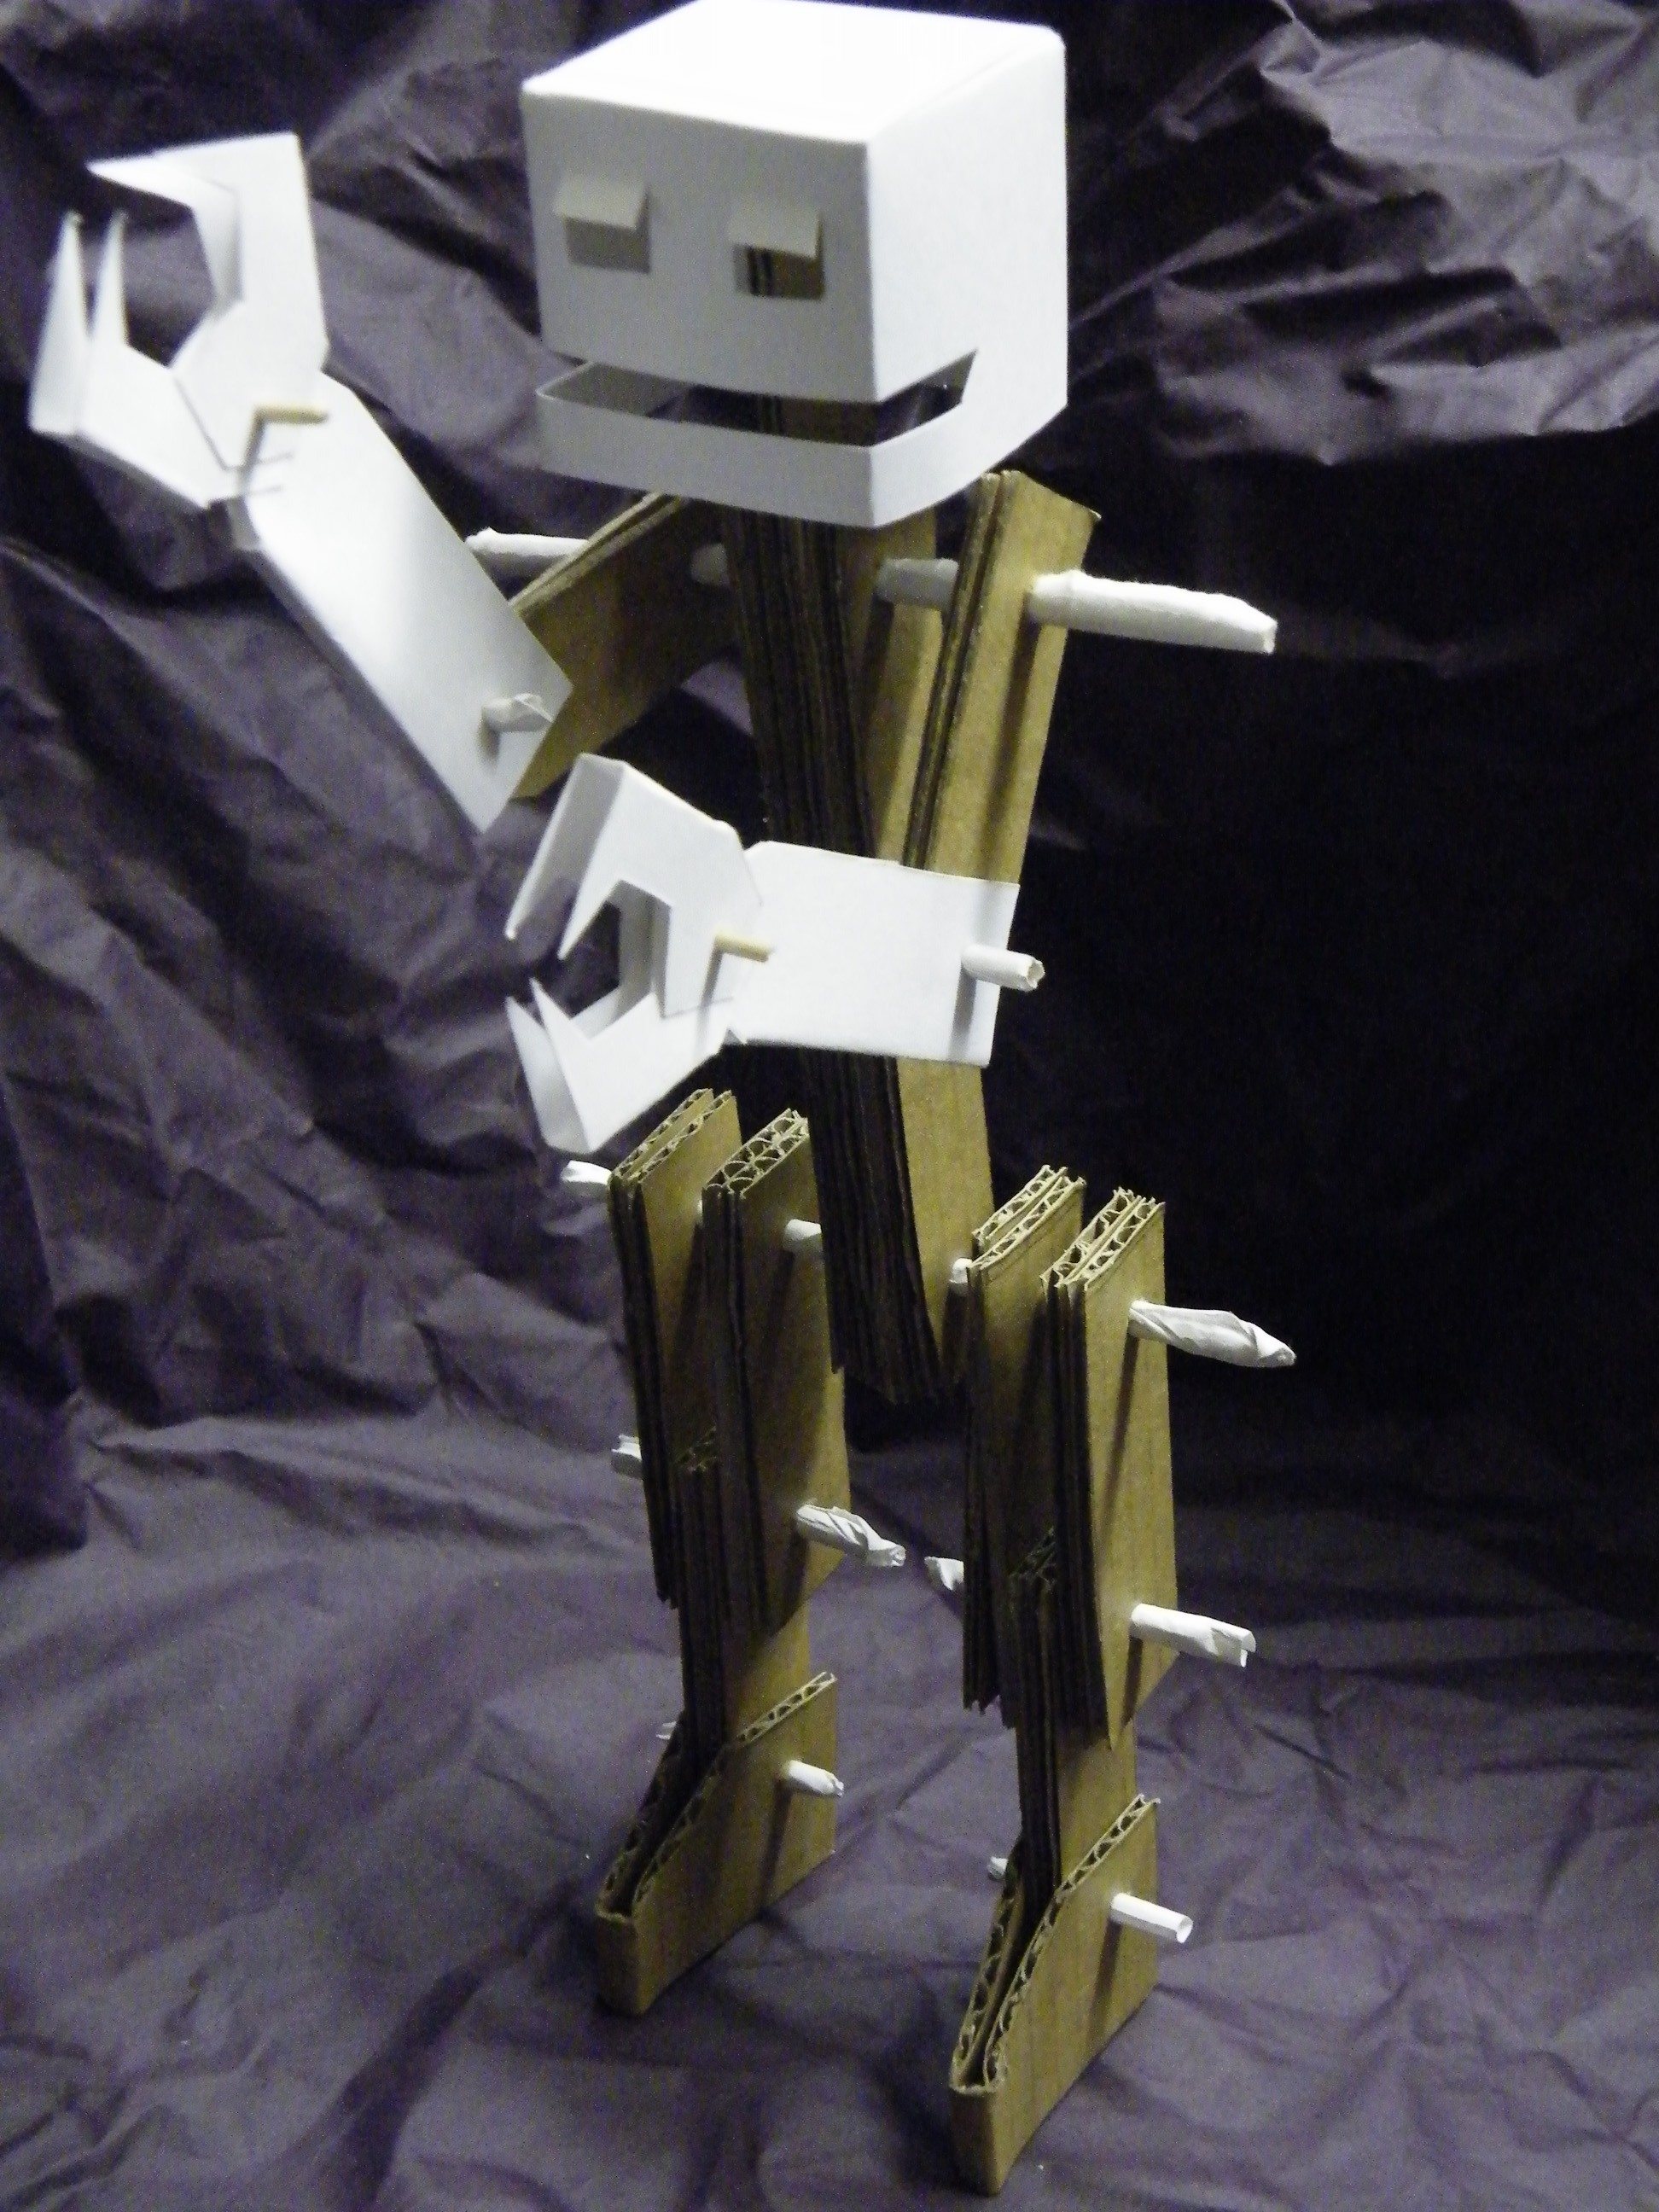 The Glueless, Poseable Cardboard Robot.